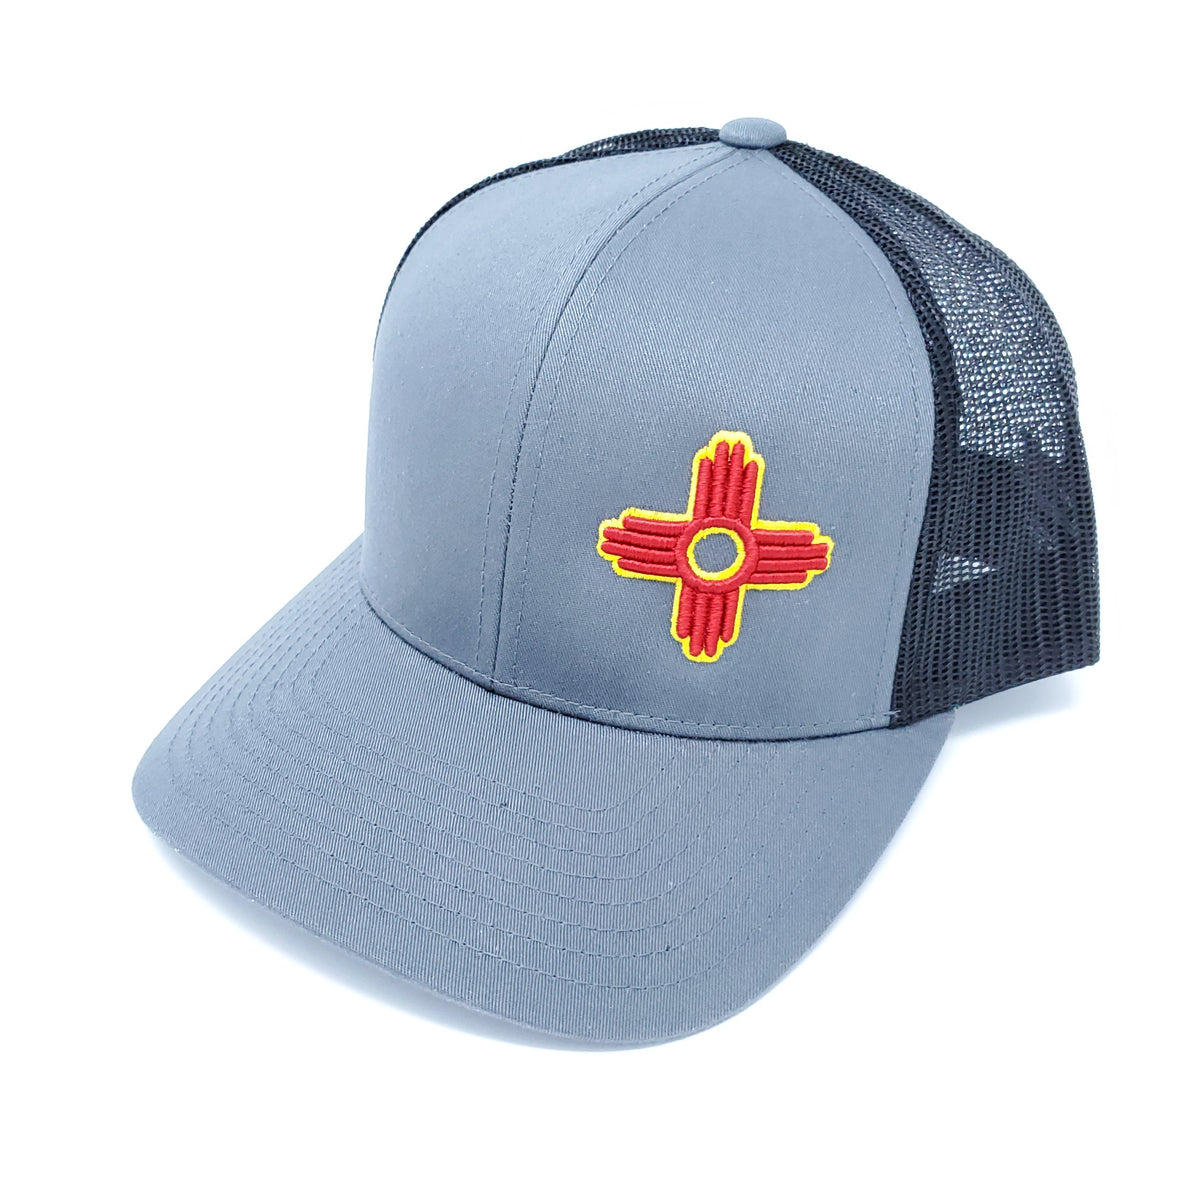 Graphite and Black Embroidered Zia Trucker Style Snapback - Ragged Apparel Screen Printing and Signs - www.nmshirts.com